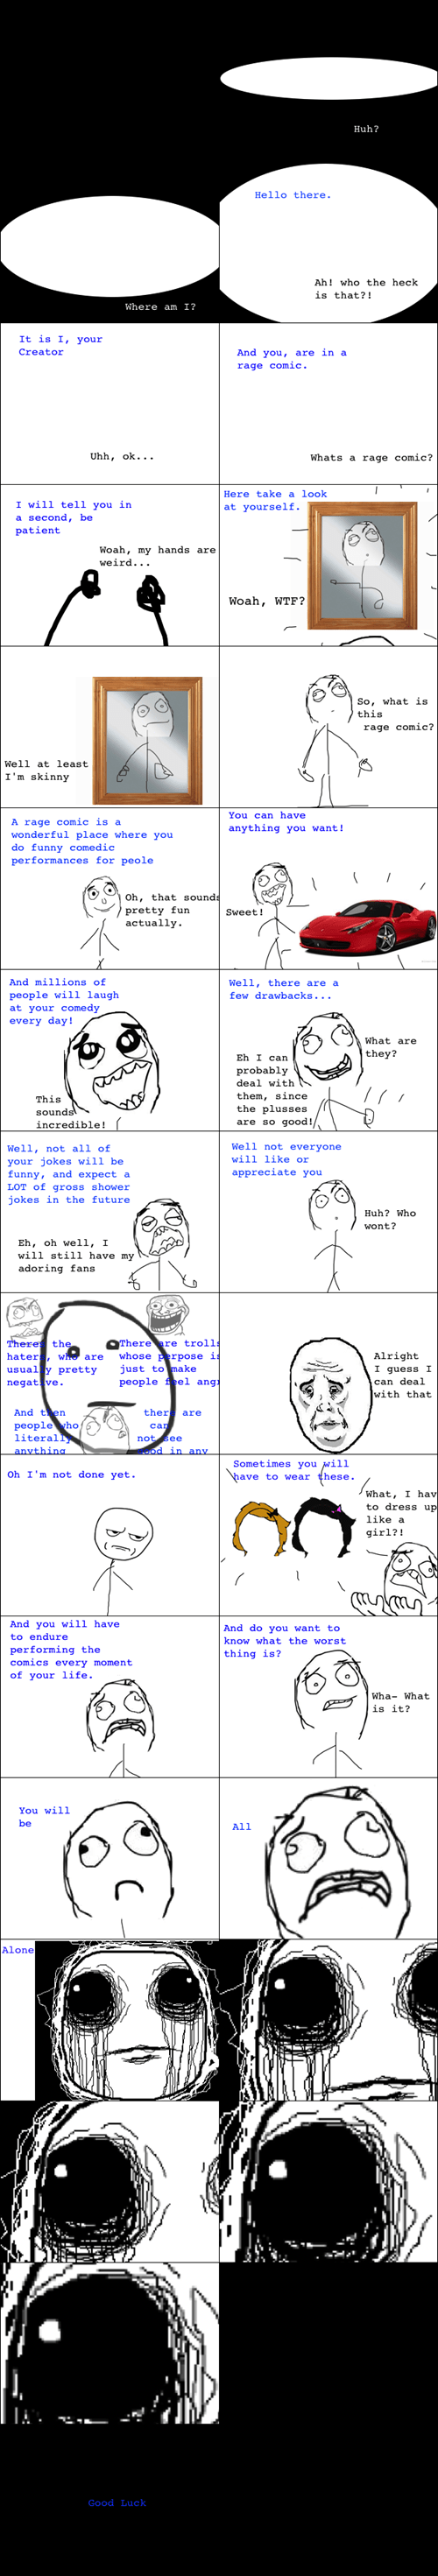 making rage comics creation - 7609744640